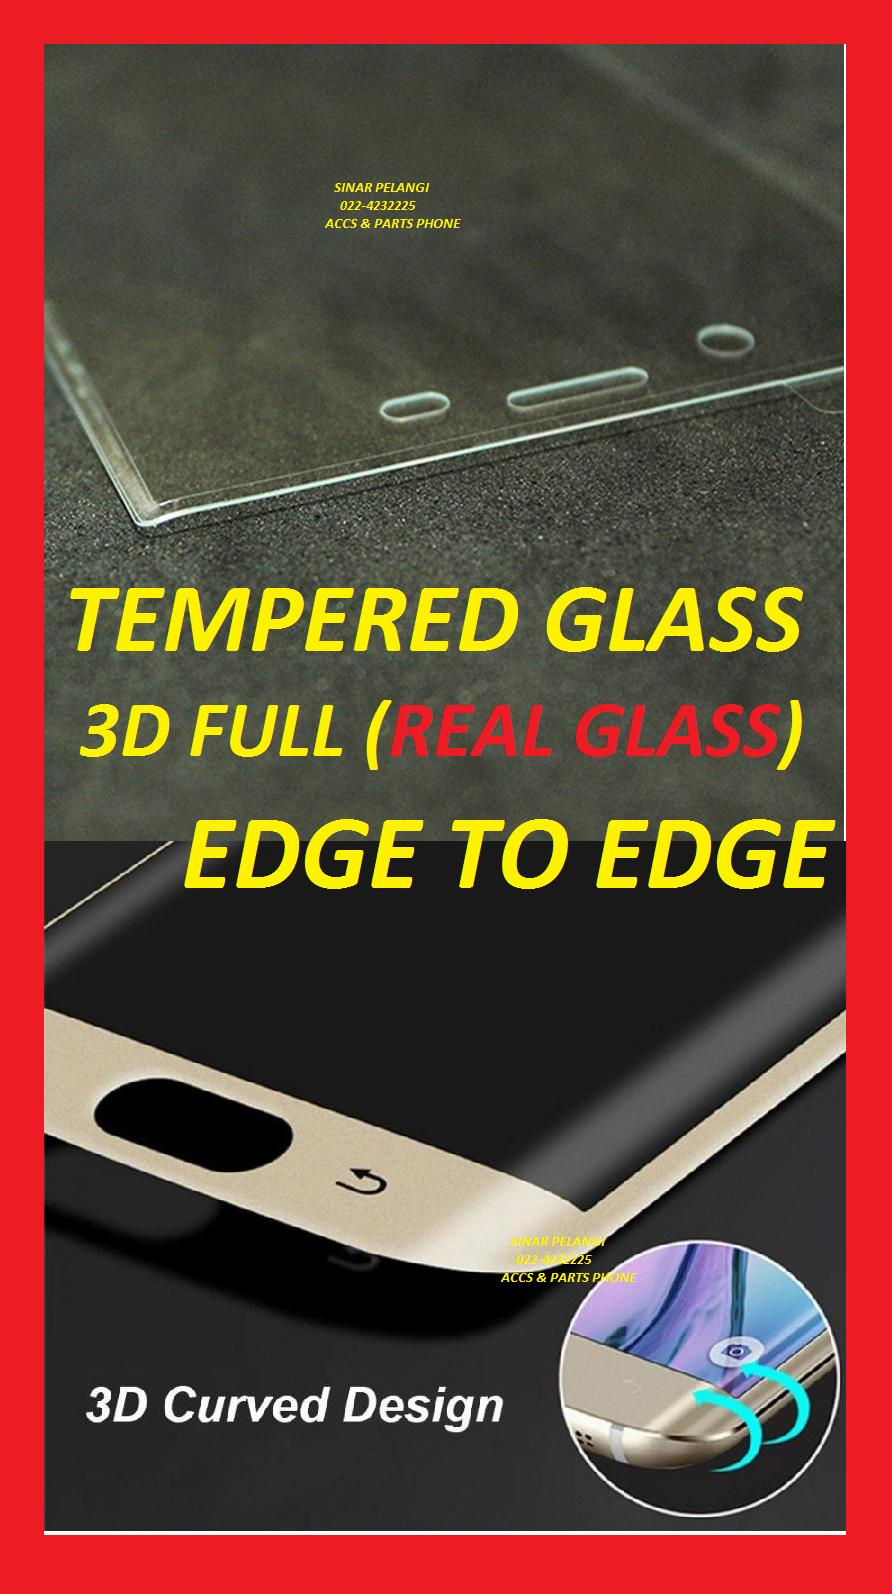 SAMSUNG NOTE 8 N950 TRANSPARANT CLEAR  BENING 3D FULL COVER CURVED CURVE 2.5D ROUND EDGE TO EDGE LENGKUNG CEKUNG ANTI GORES TEMPERED TEMPER GLASS KACA HIFI 906924